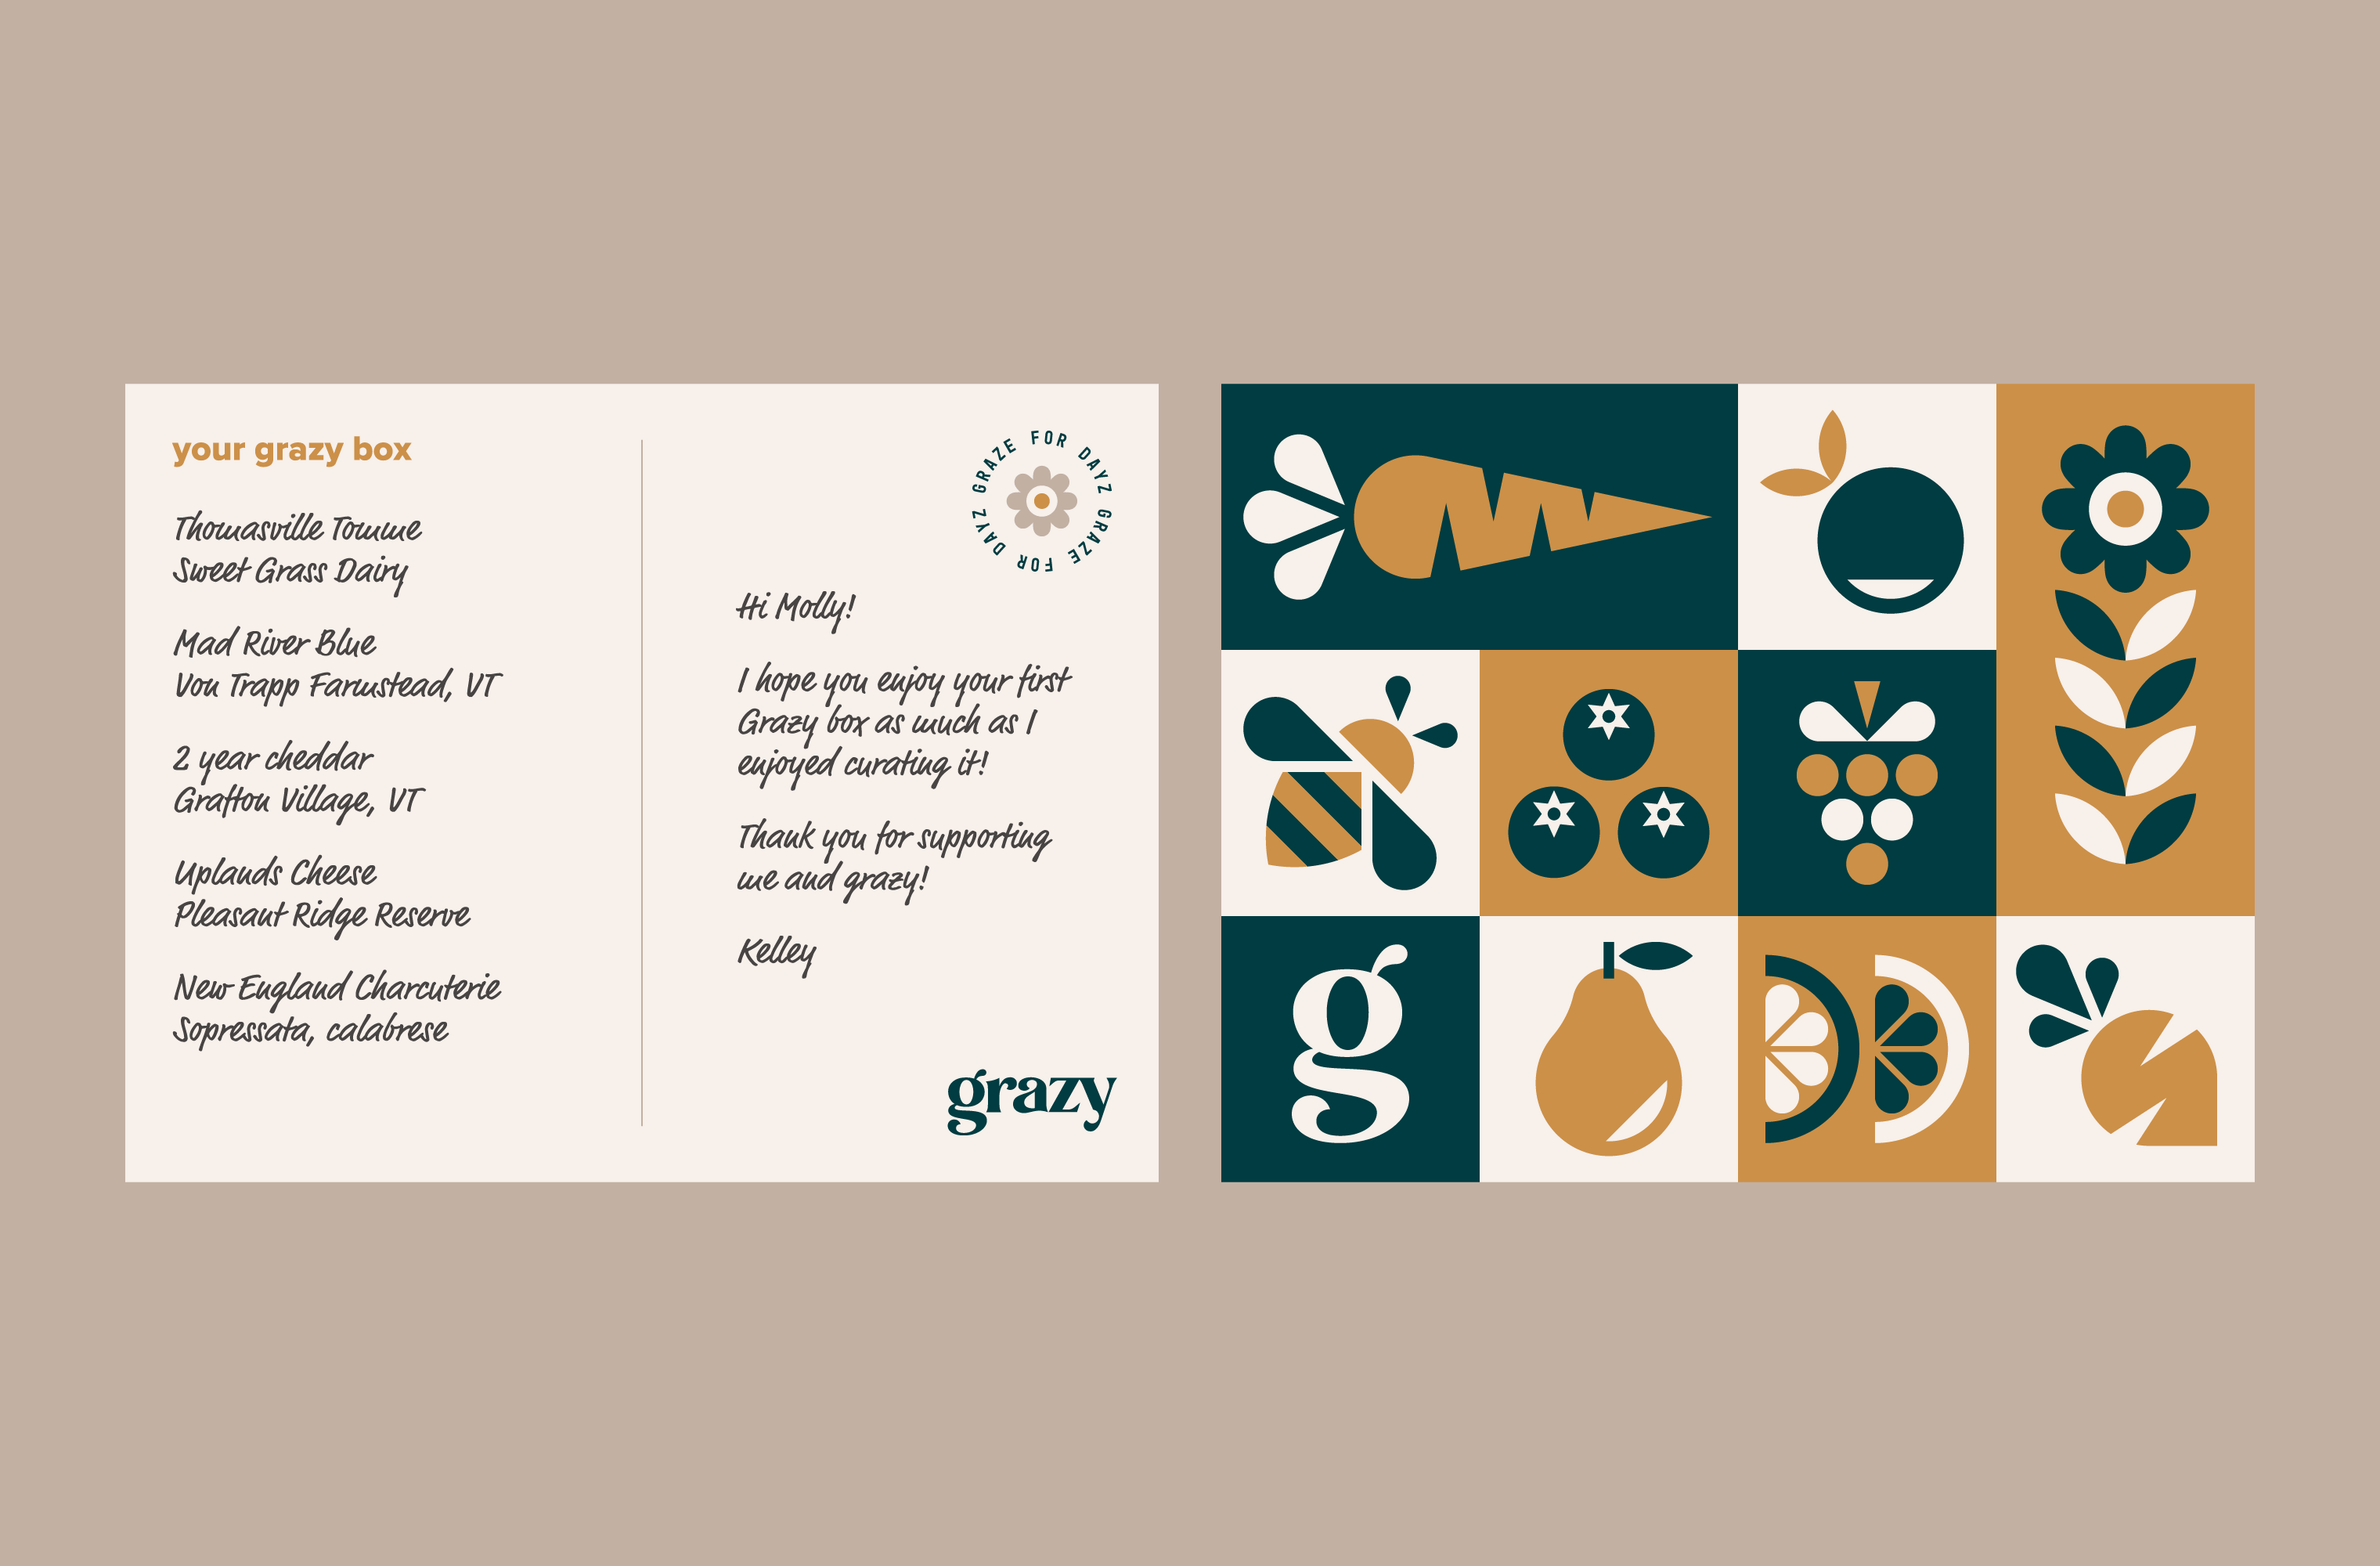 Front and back of the Grazy notecard that describes the box ingredients